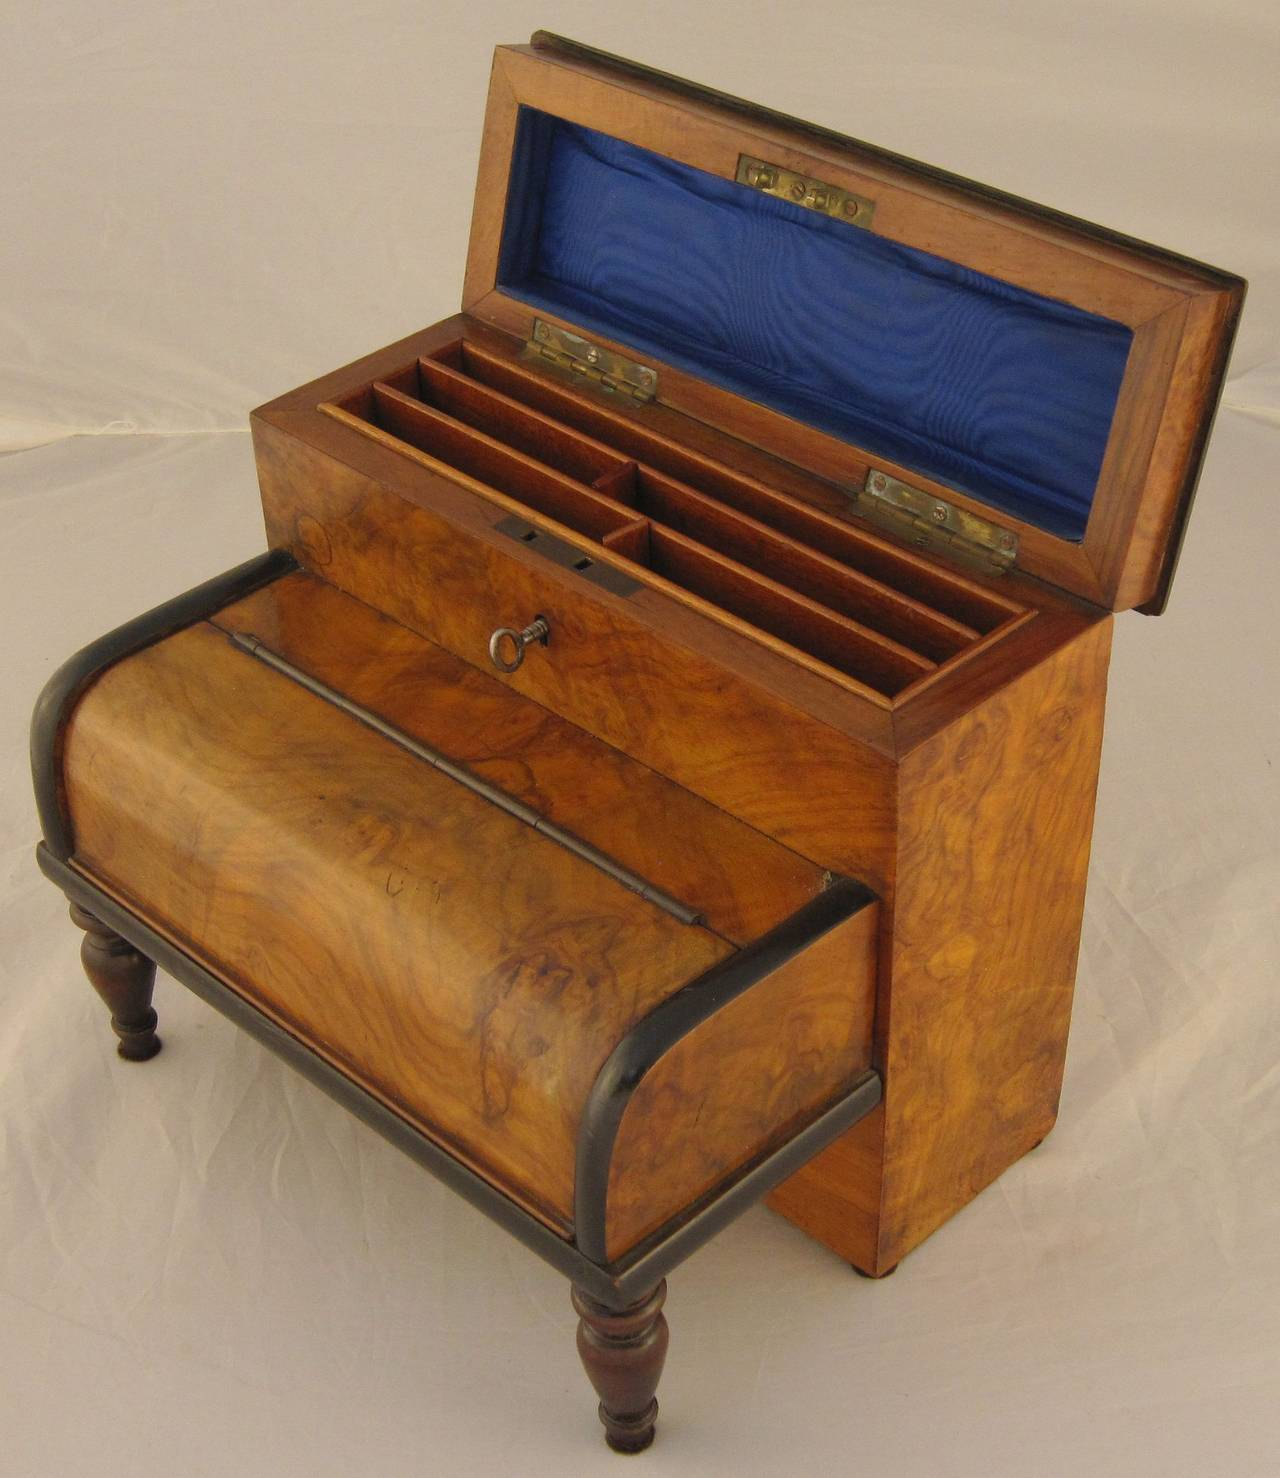 English Desk Set With Inkwells And Stationery Box For 2